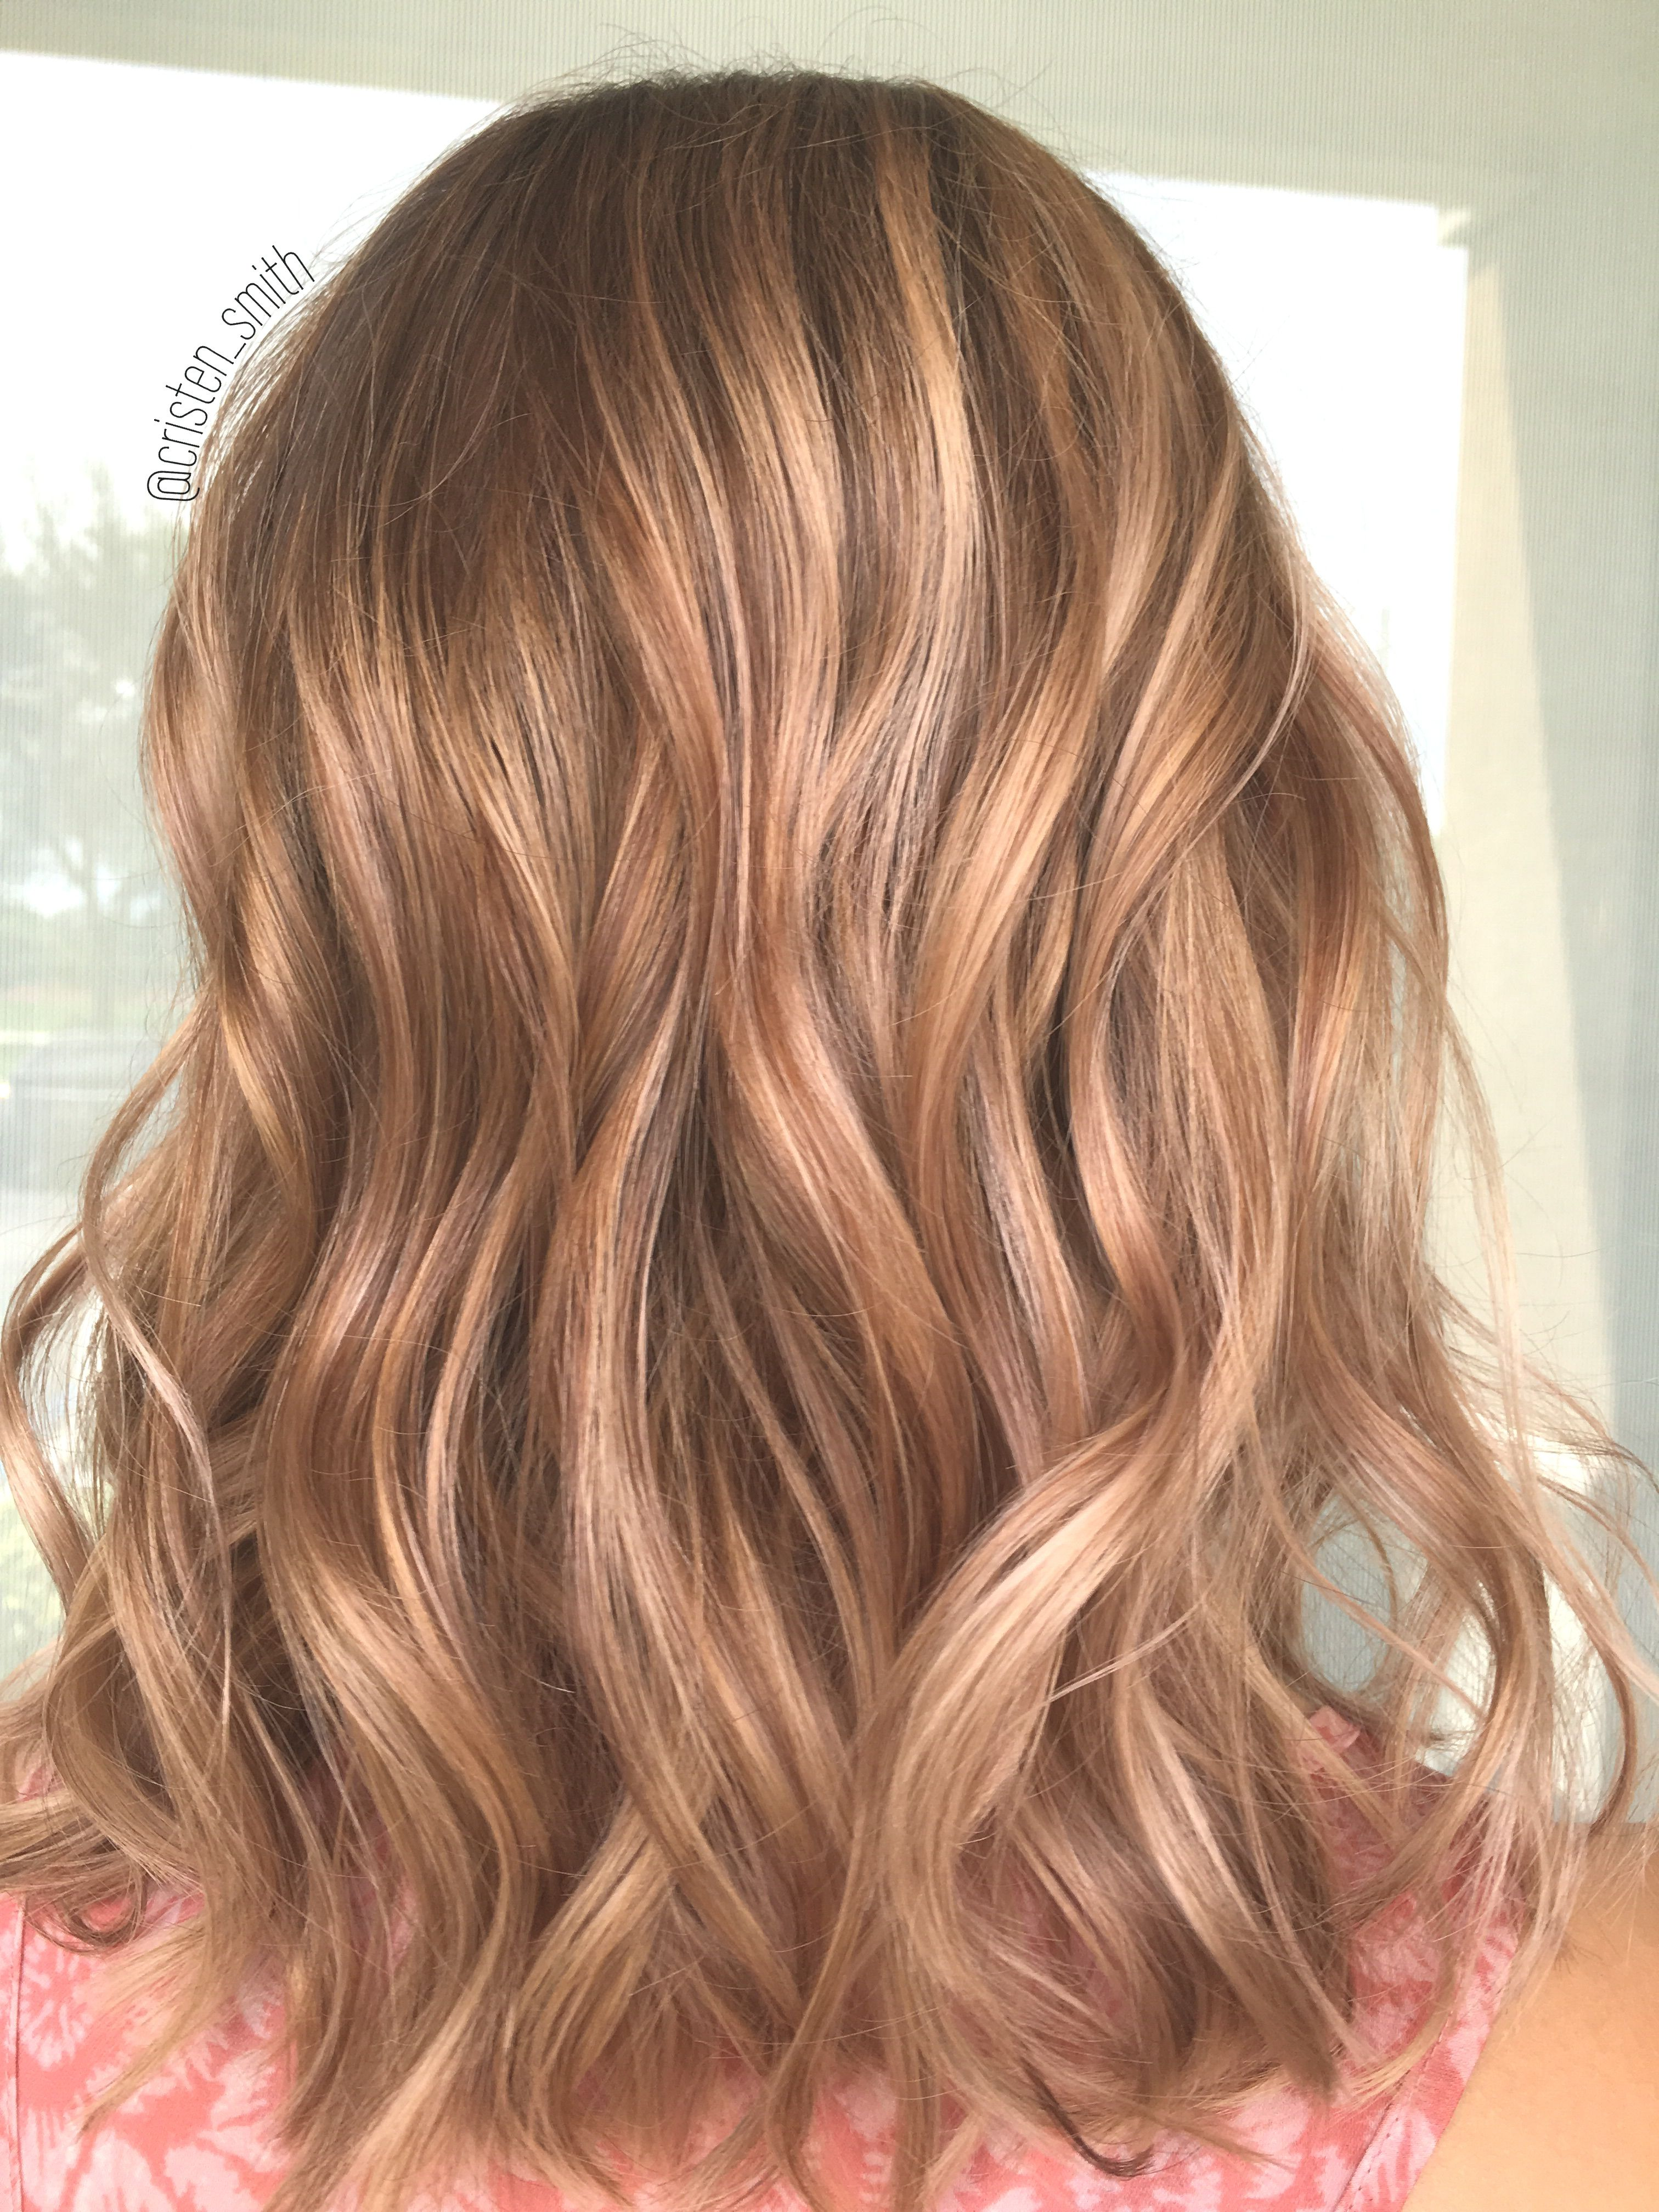 Pin On Hairstyles Dyed